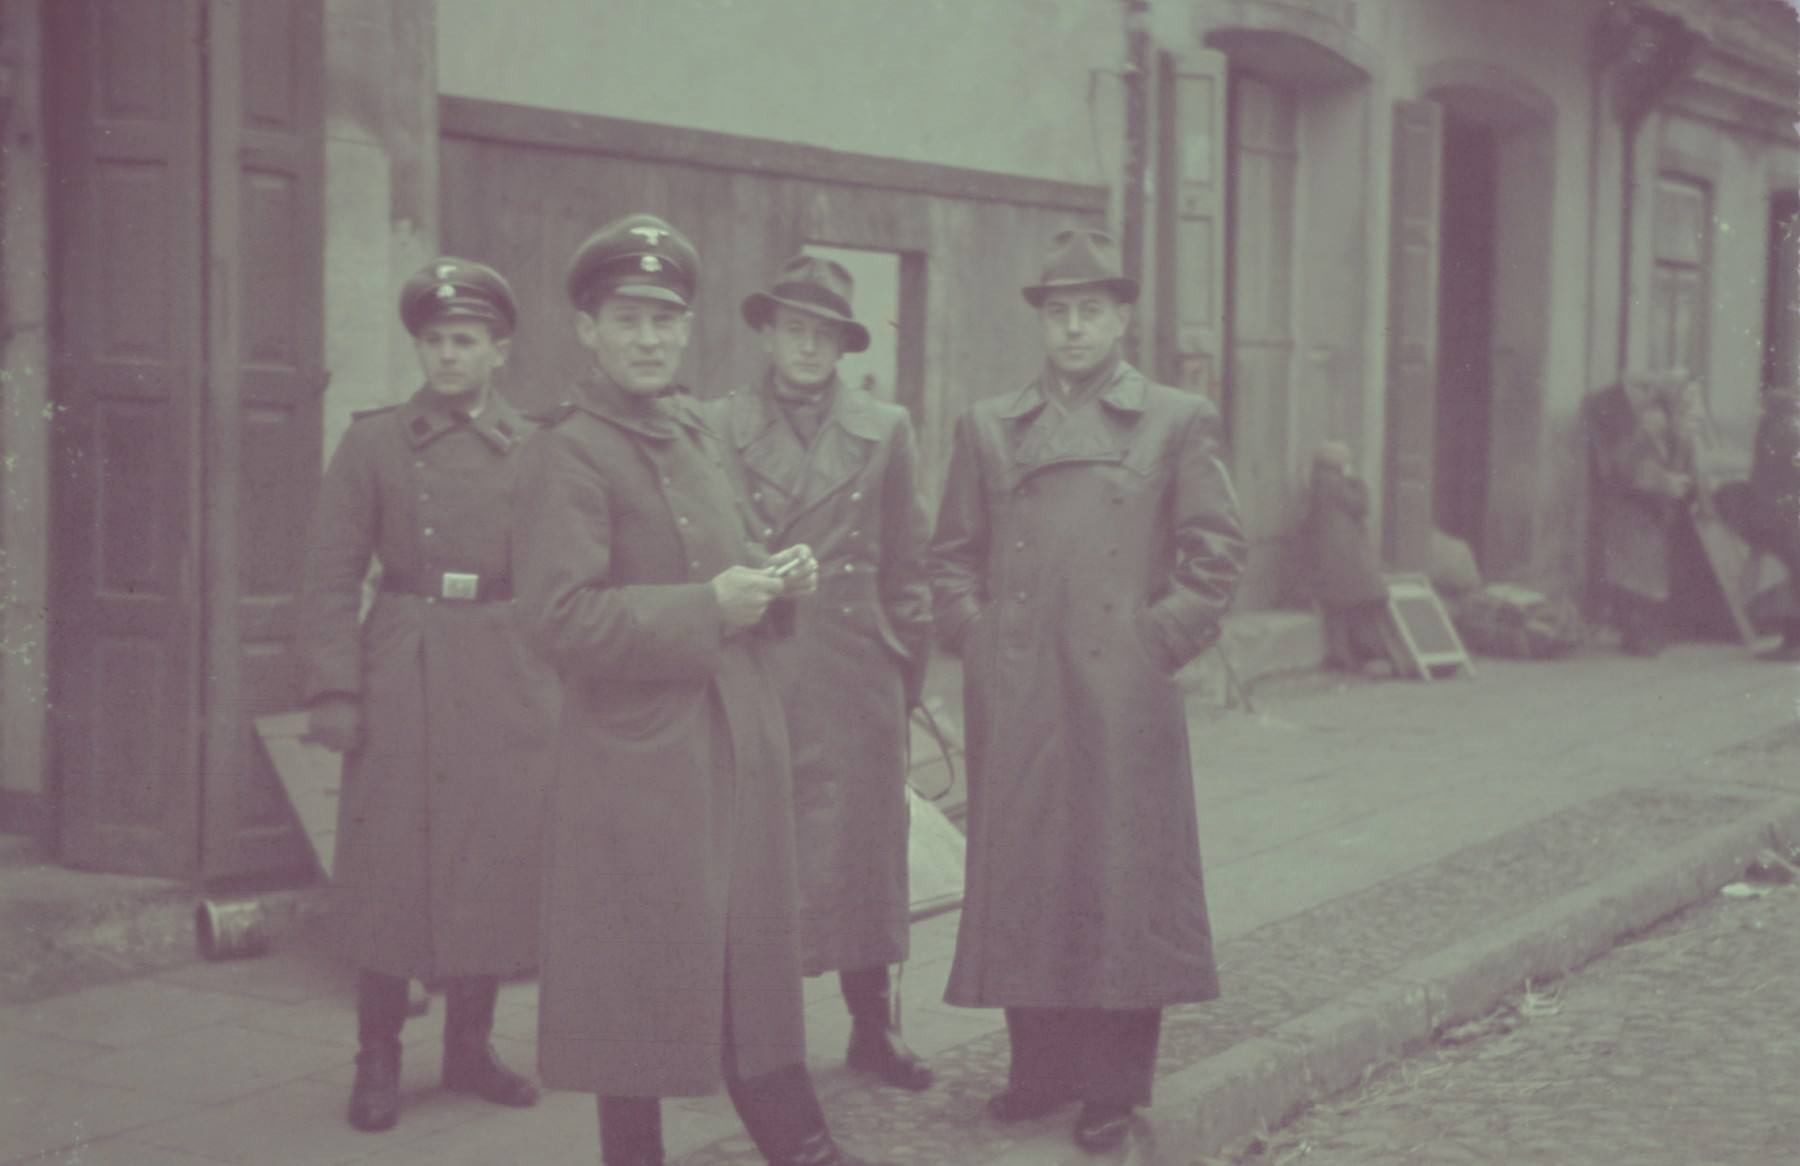 Two SS men gather with two other Germans on a street in the Lodz ghetto.